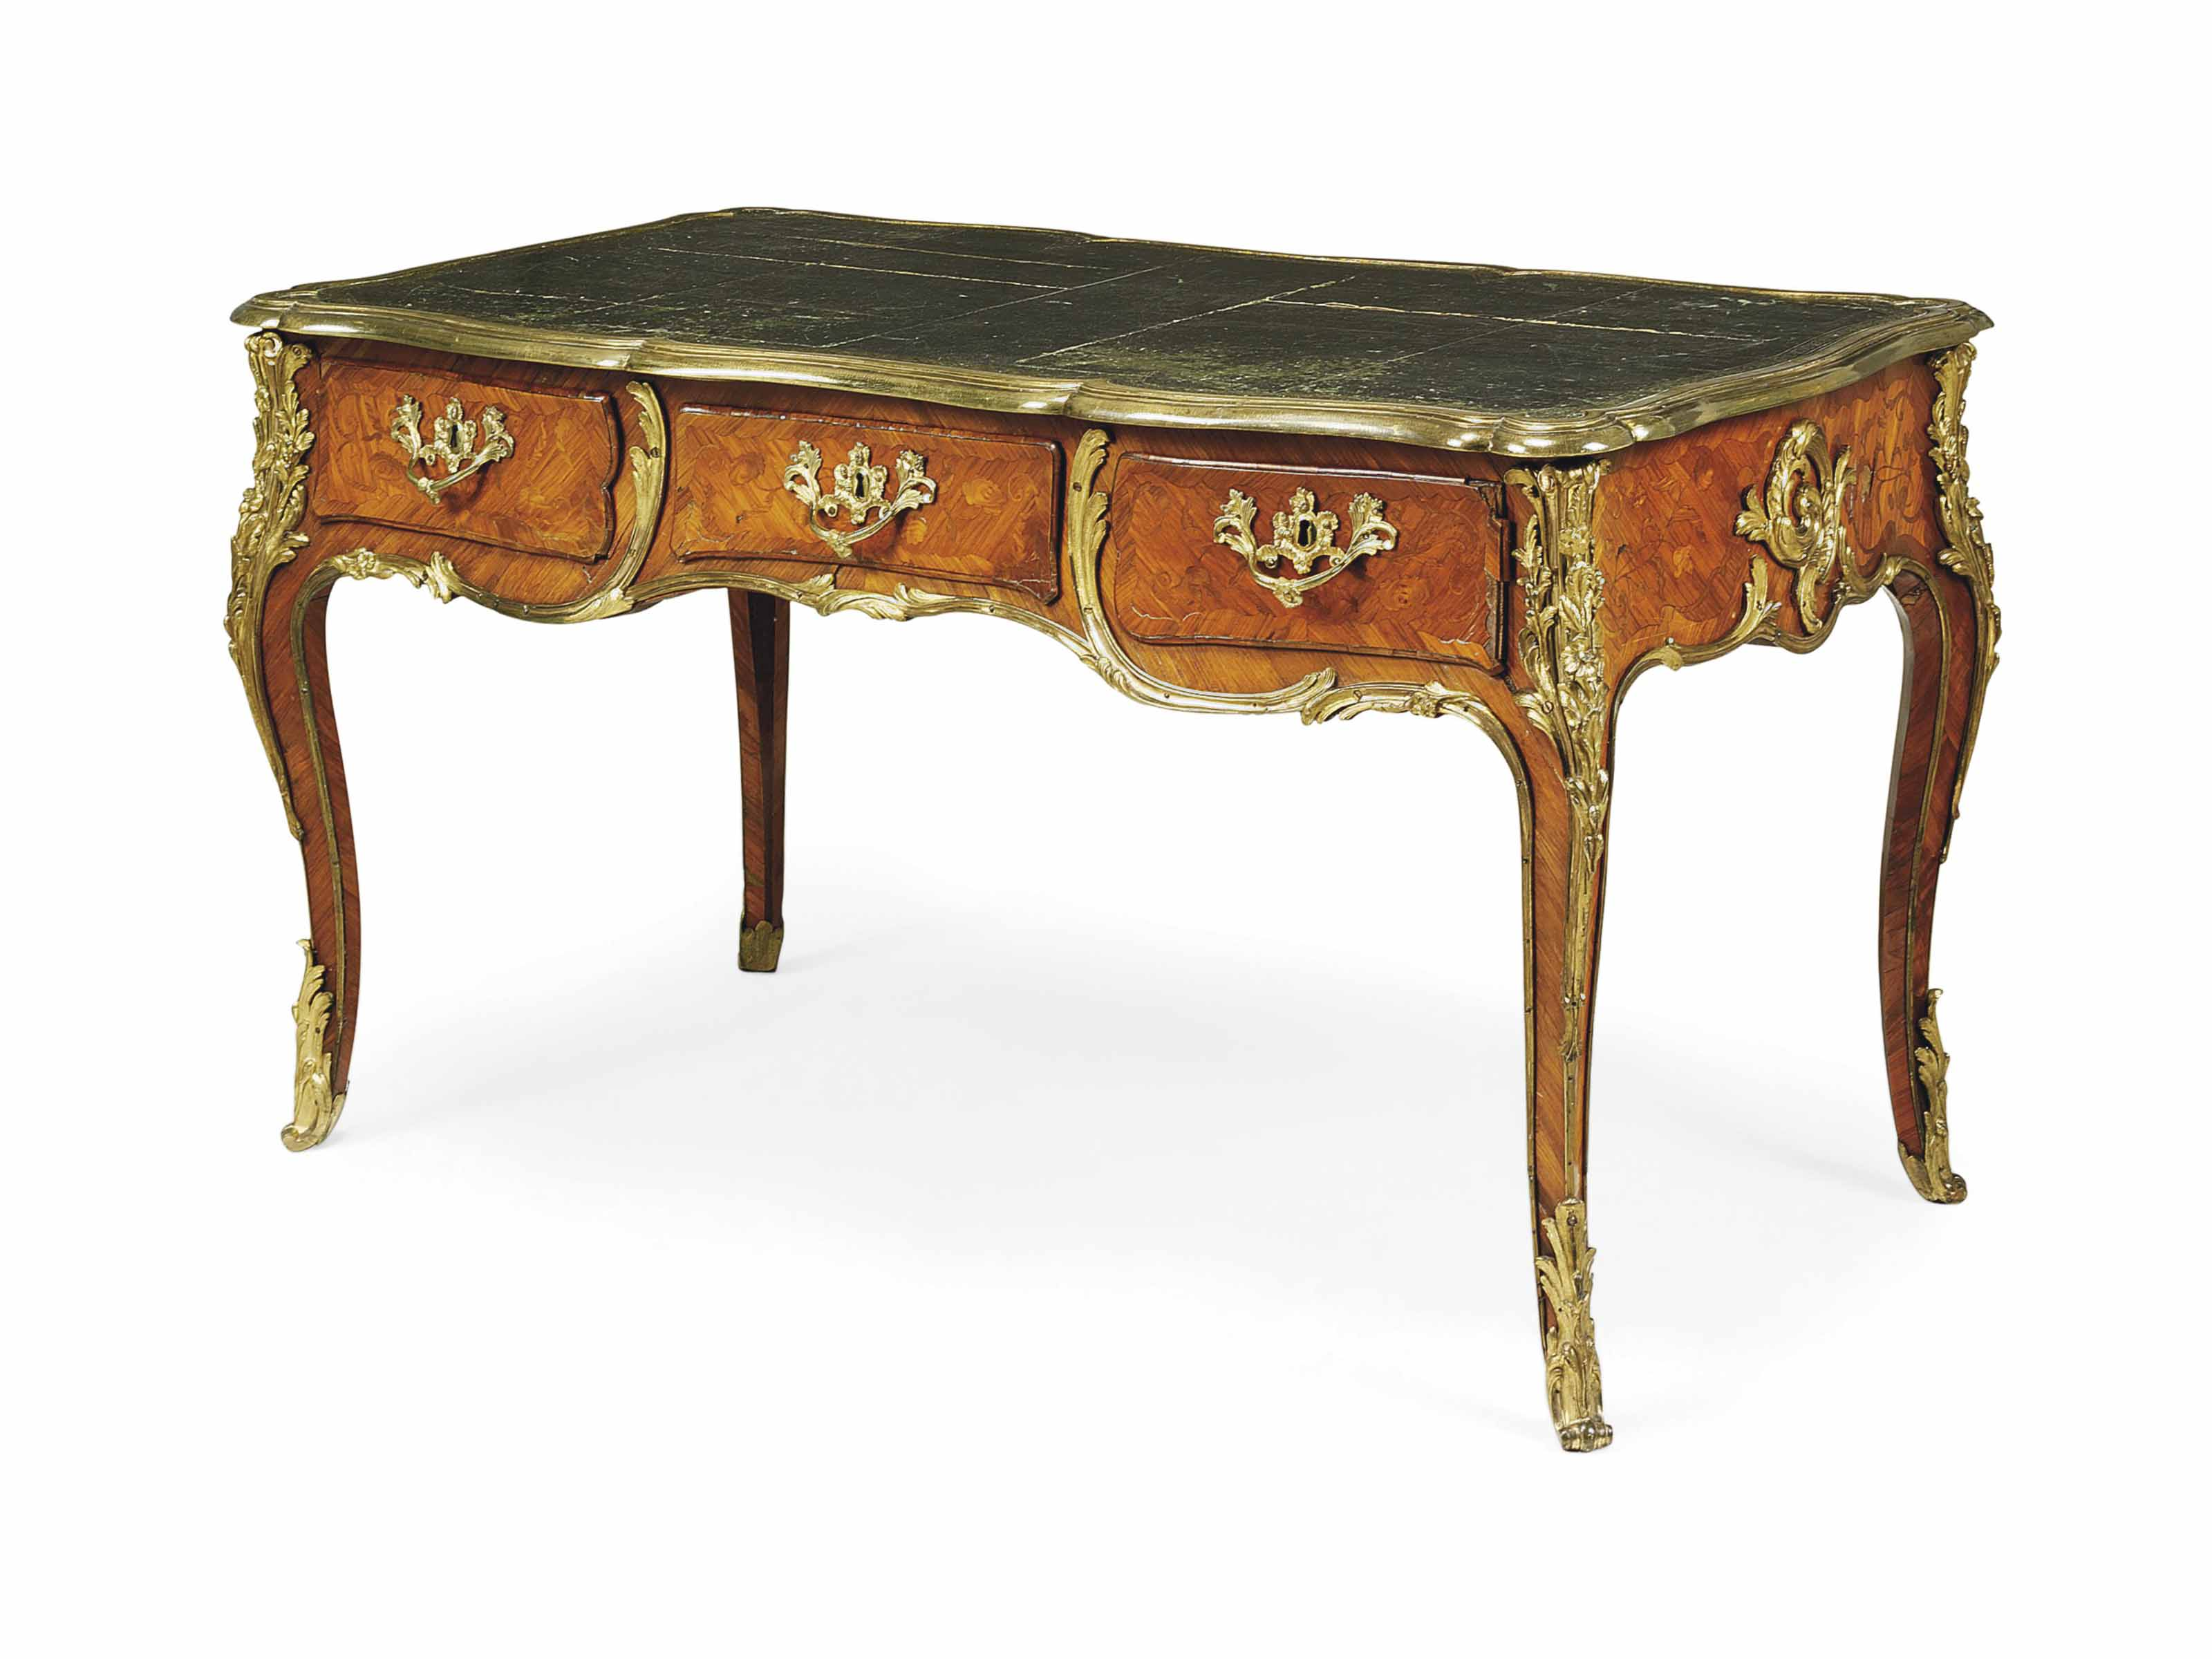 A LOUIS XV ORMOLU-MOUNTED TULIPWOOD AND MARQUETRY BUREAU PLAT